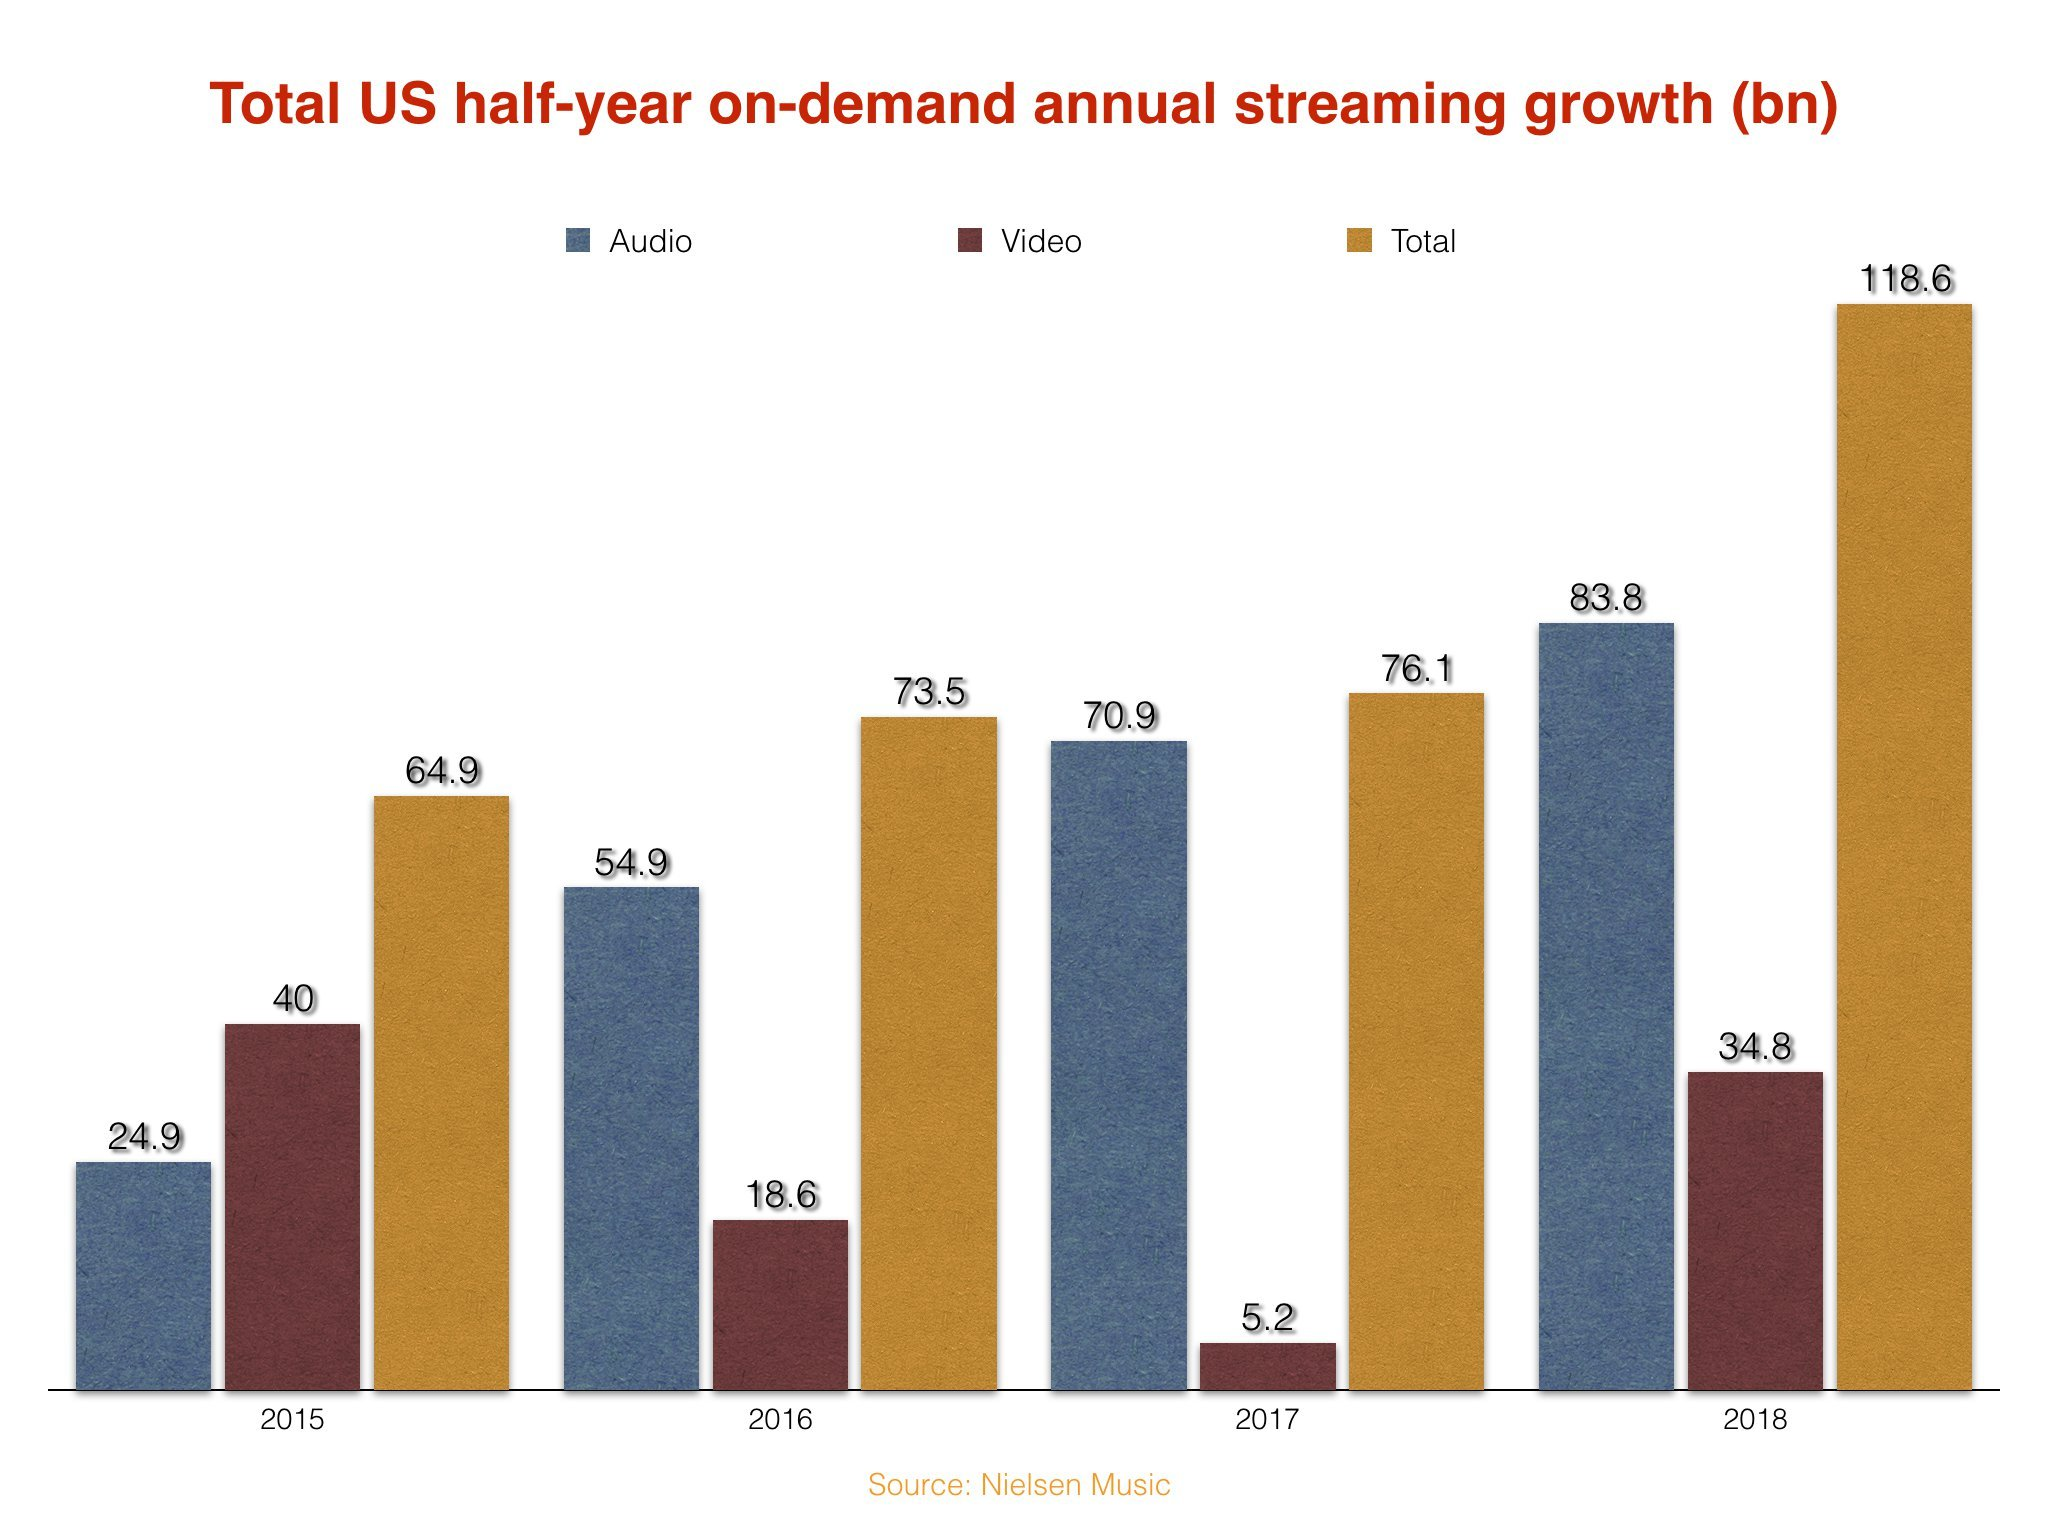 Music Streams In The Us Grew By Over 118bn In The First